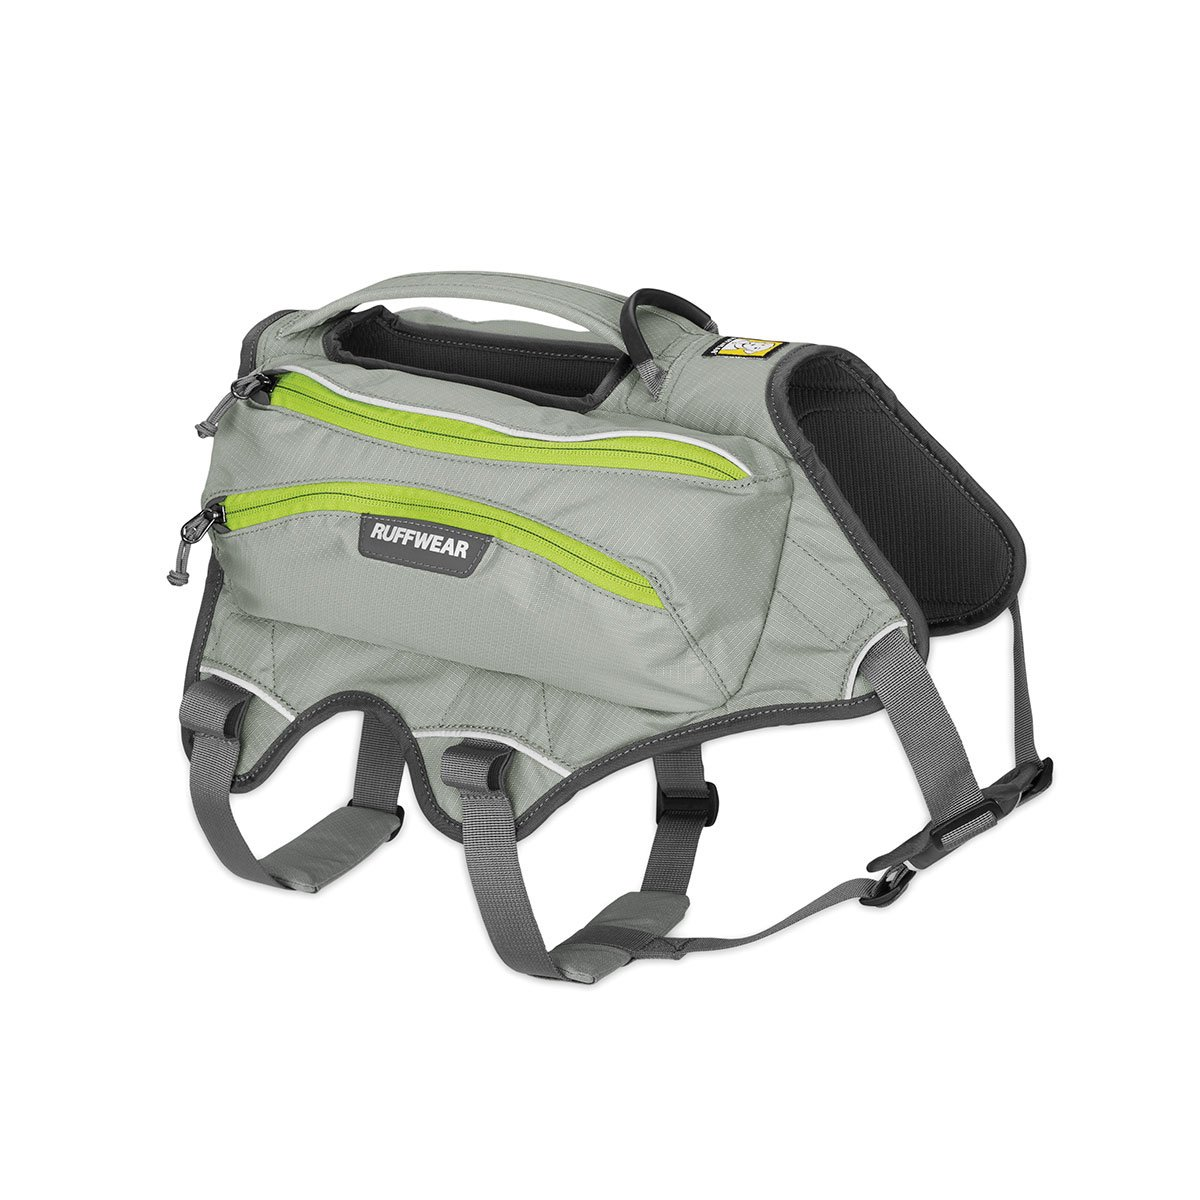 RUFFWEAR - Singletrak Low-Profile Hydration Pack for Dogs Cloudburst Gray Large/X-Large 50301-045LL1